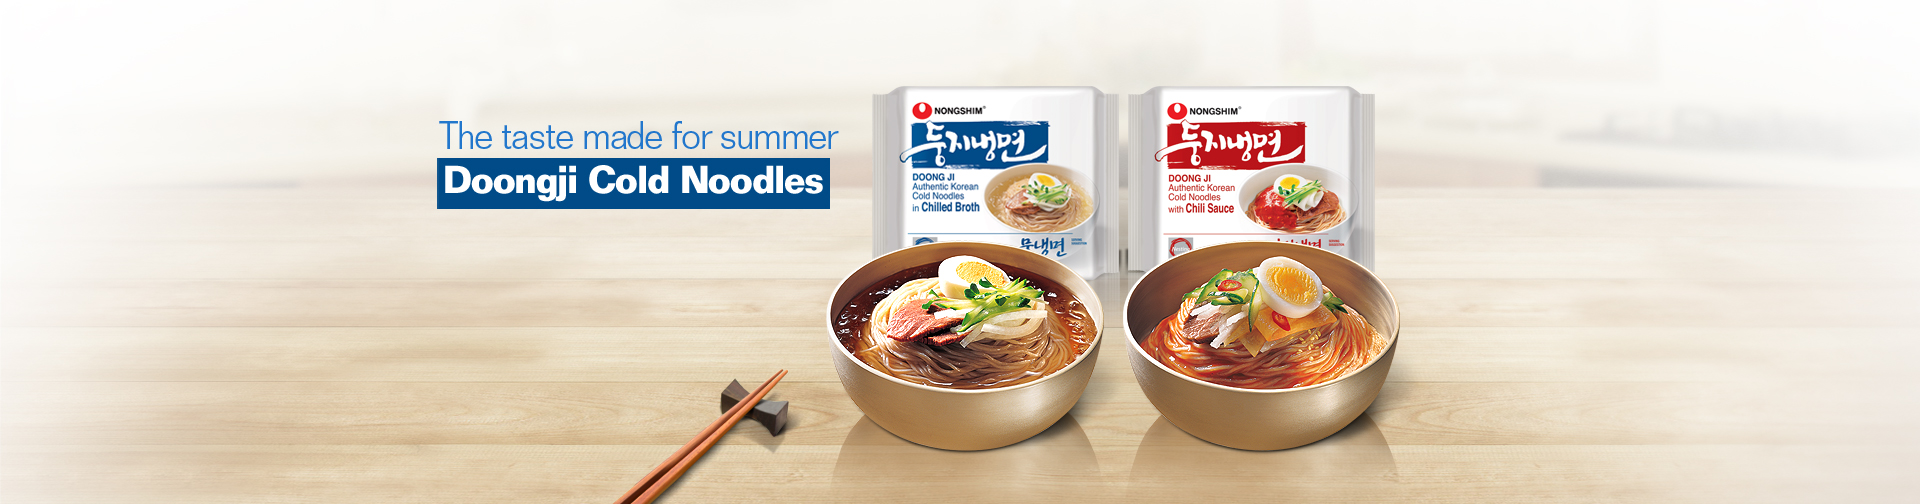 The taste made for summer